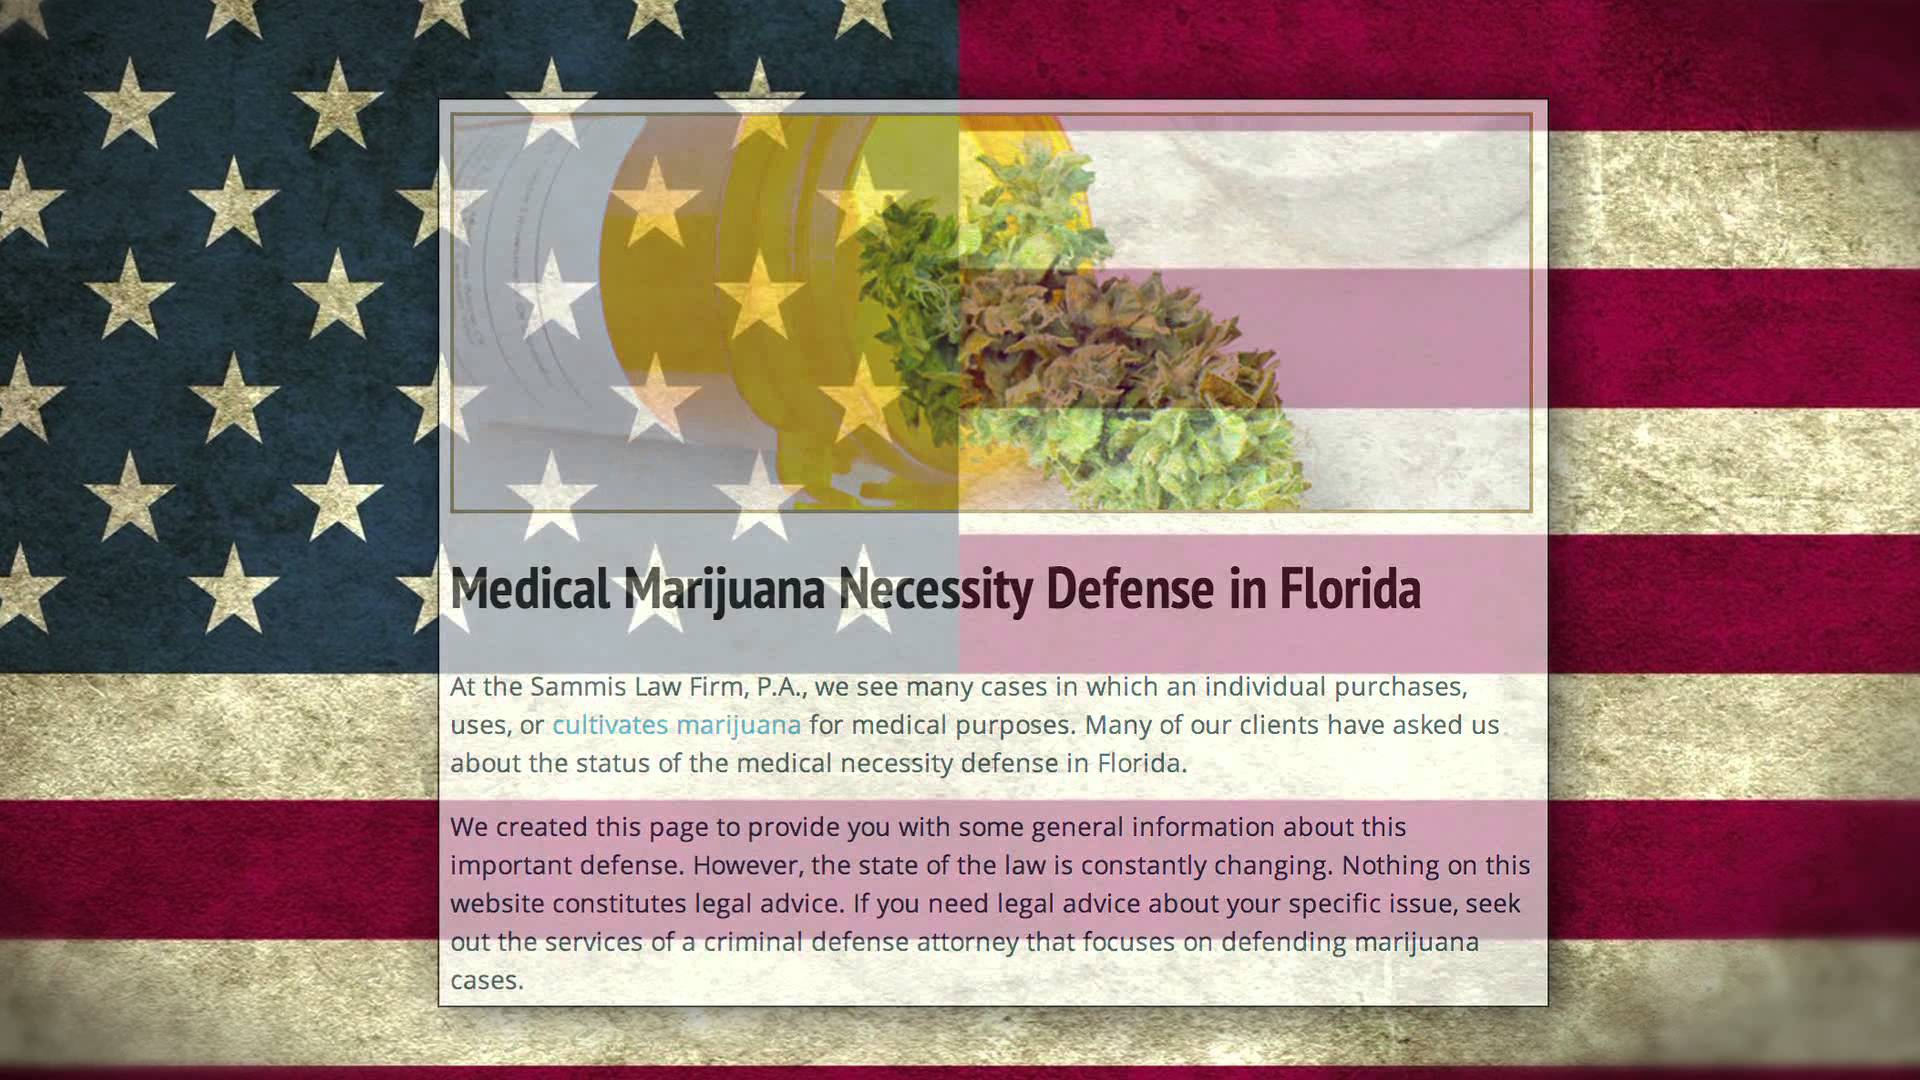 why is marijuana not a constitute for a medicine 1 smoked marijuana does not meet the standards of modern medicine marijuana is not approved by the food and drug administration (fda) so its use is unregulated.